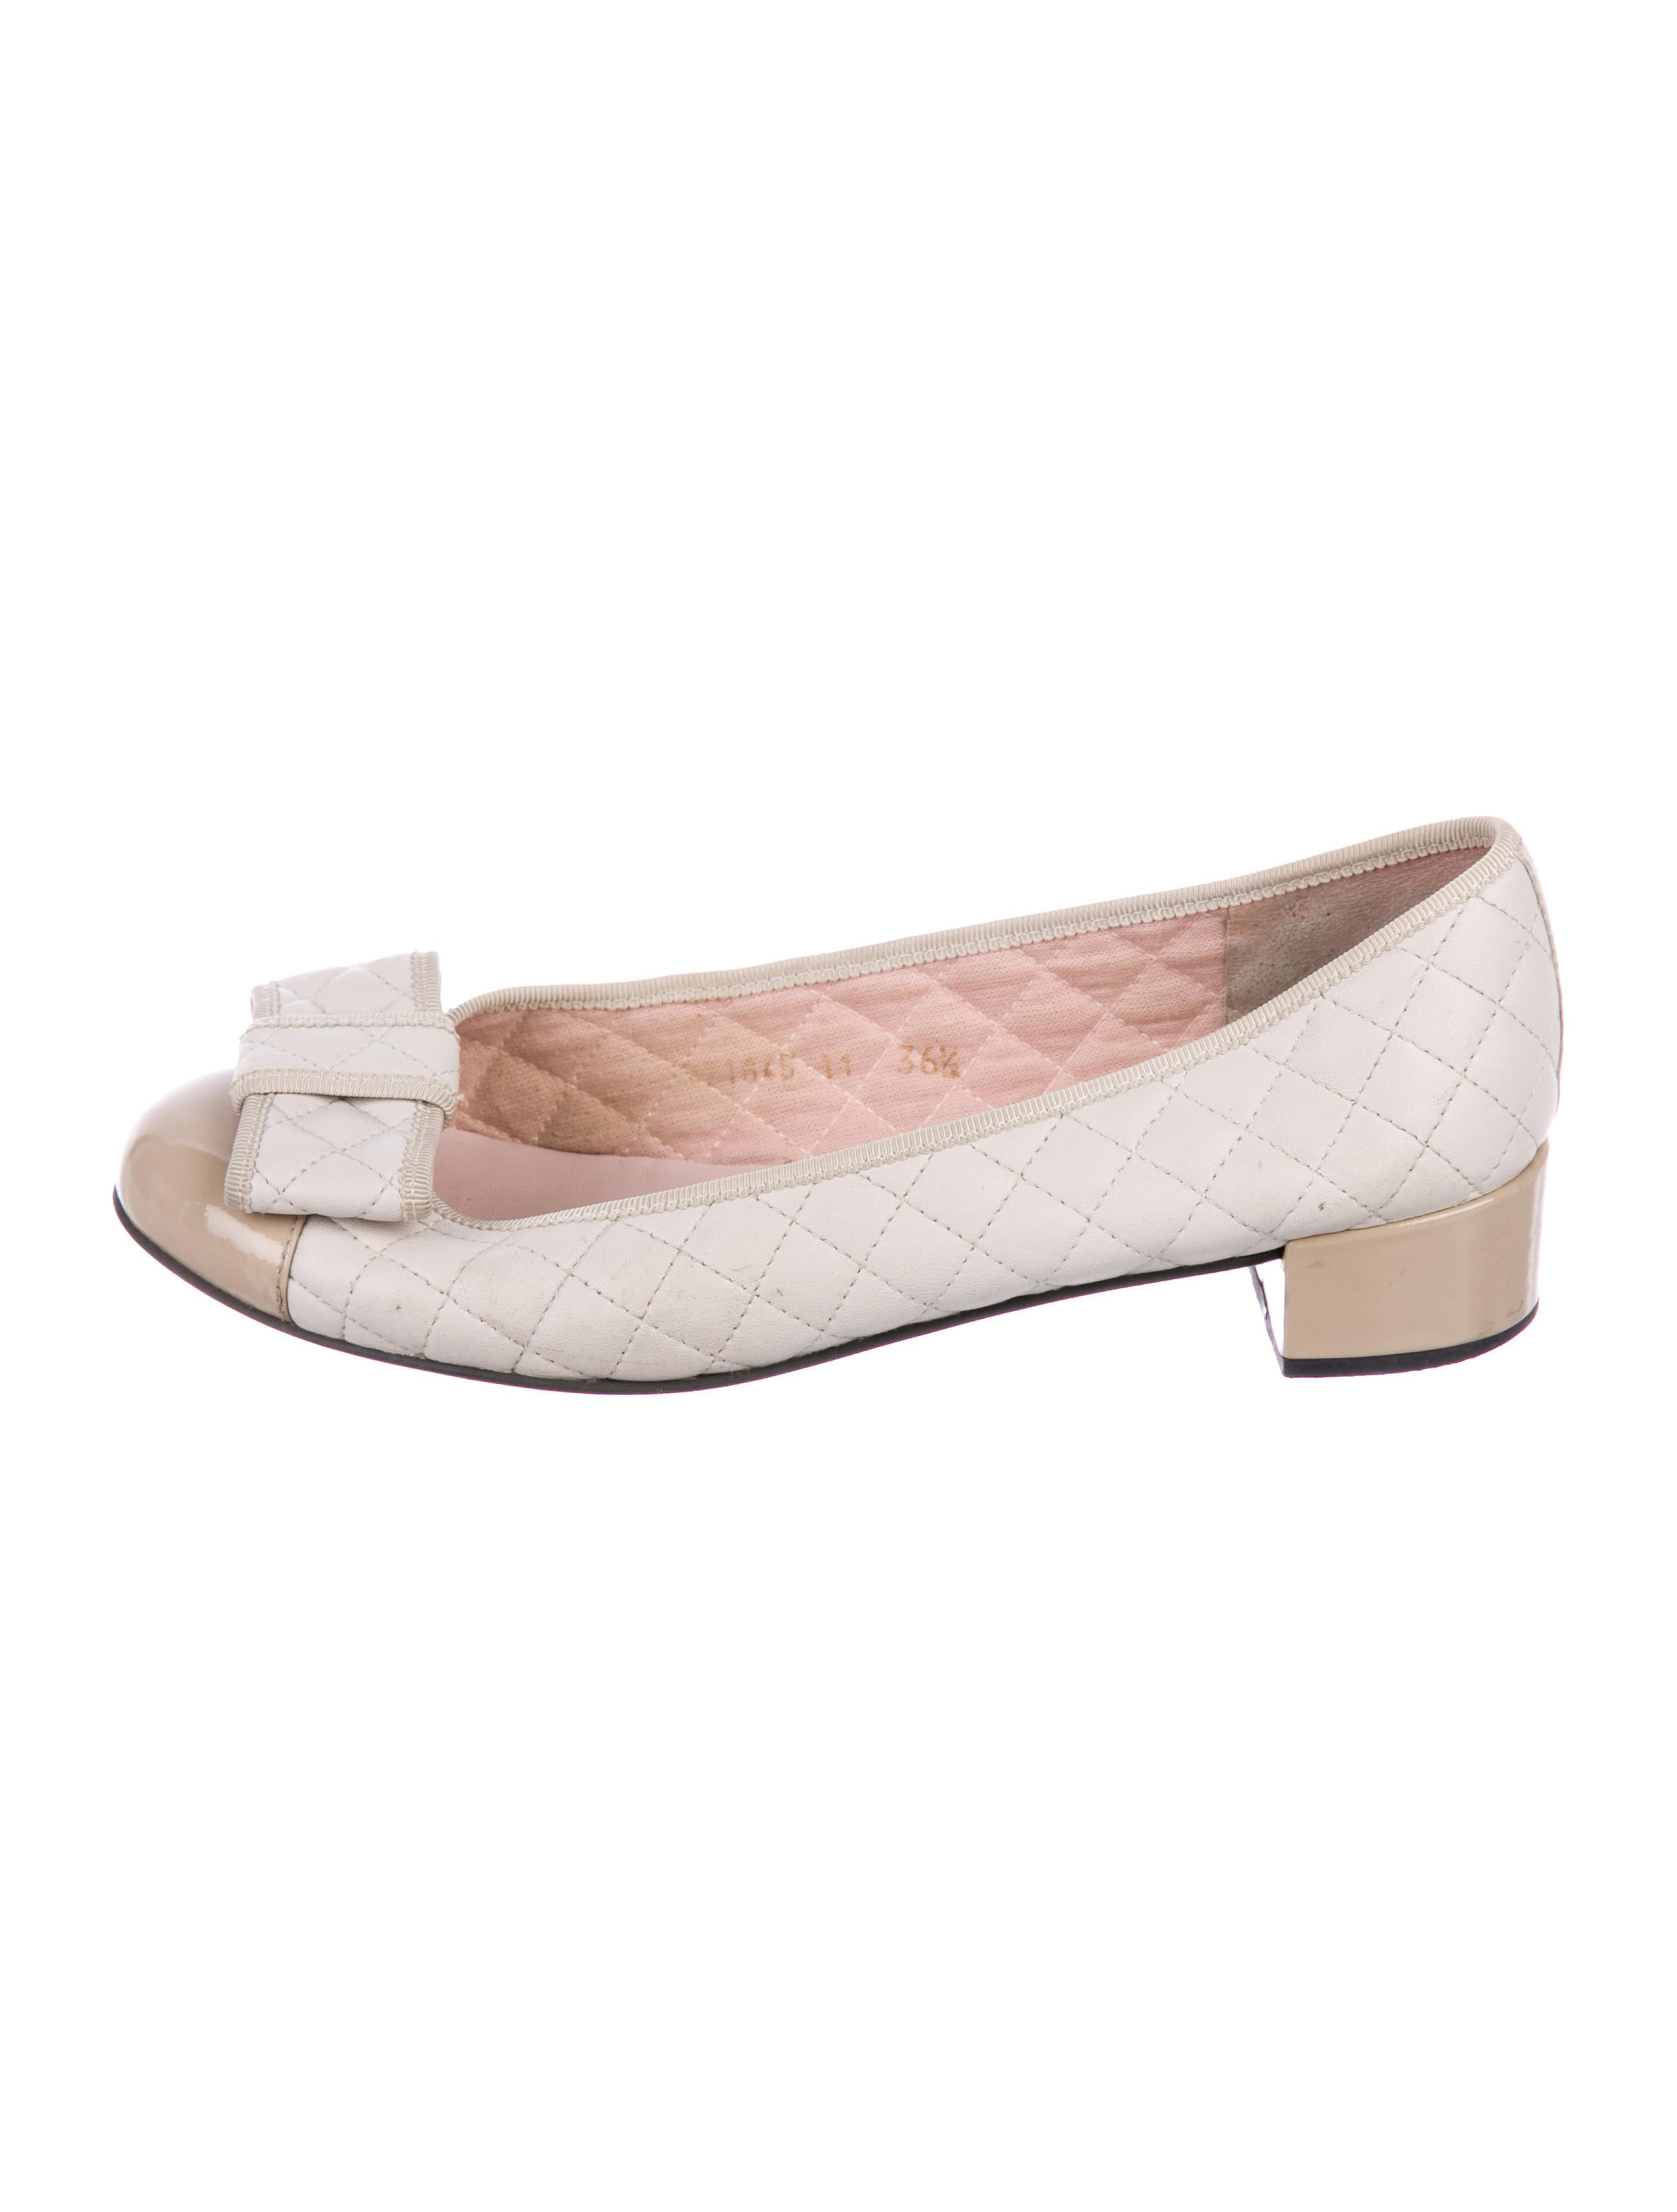 2014 unisex online Pretty Ballerinas Quilted Bow Pumps outlet low price fee shipping for sale cheap real sast cheap price 8i1cqXCNA